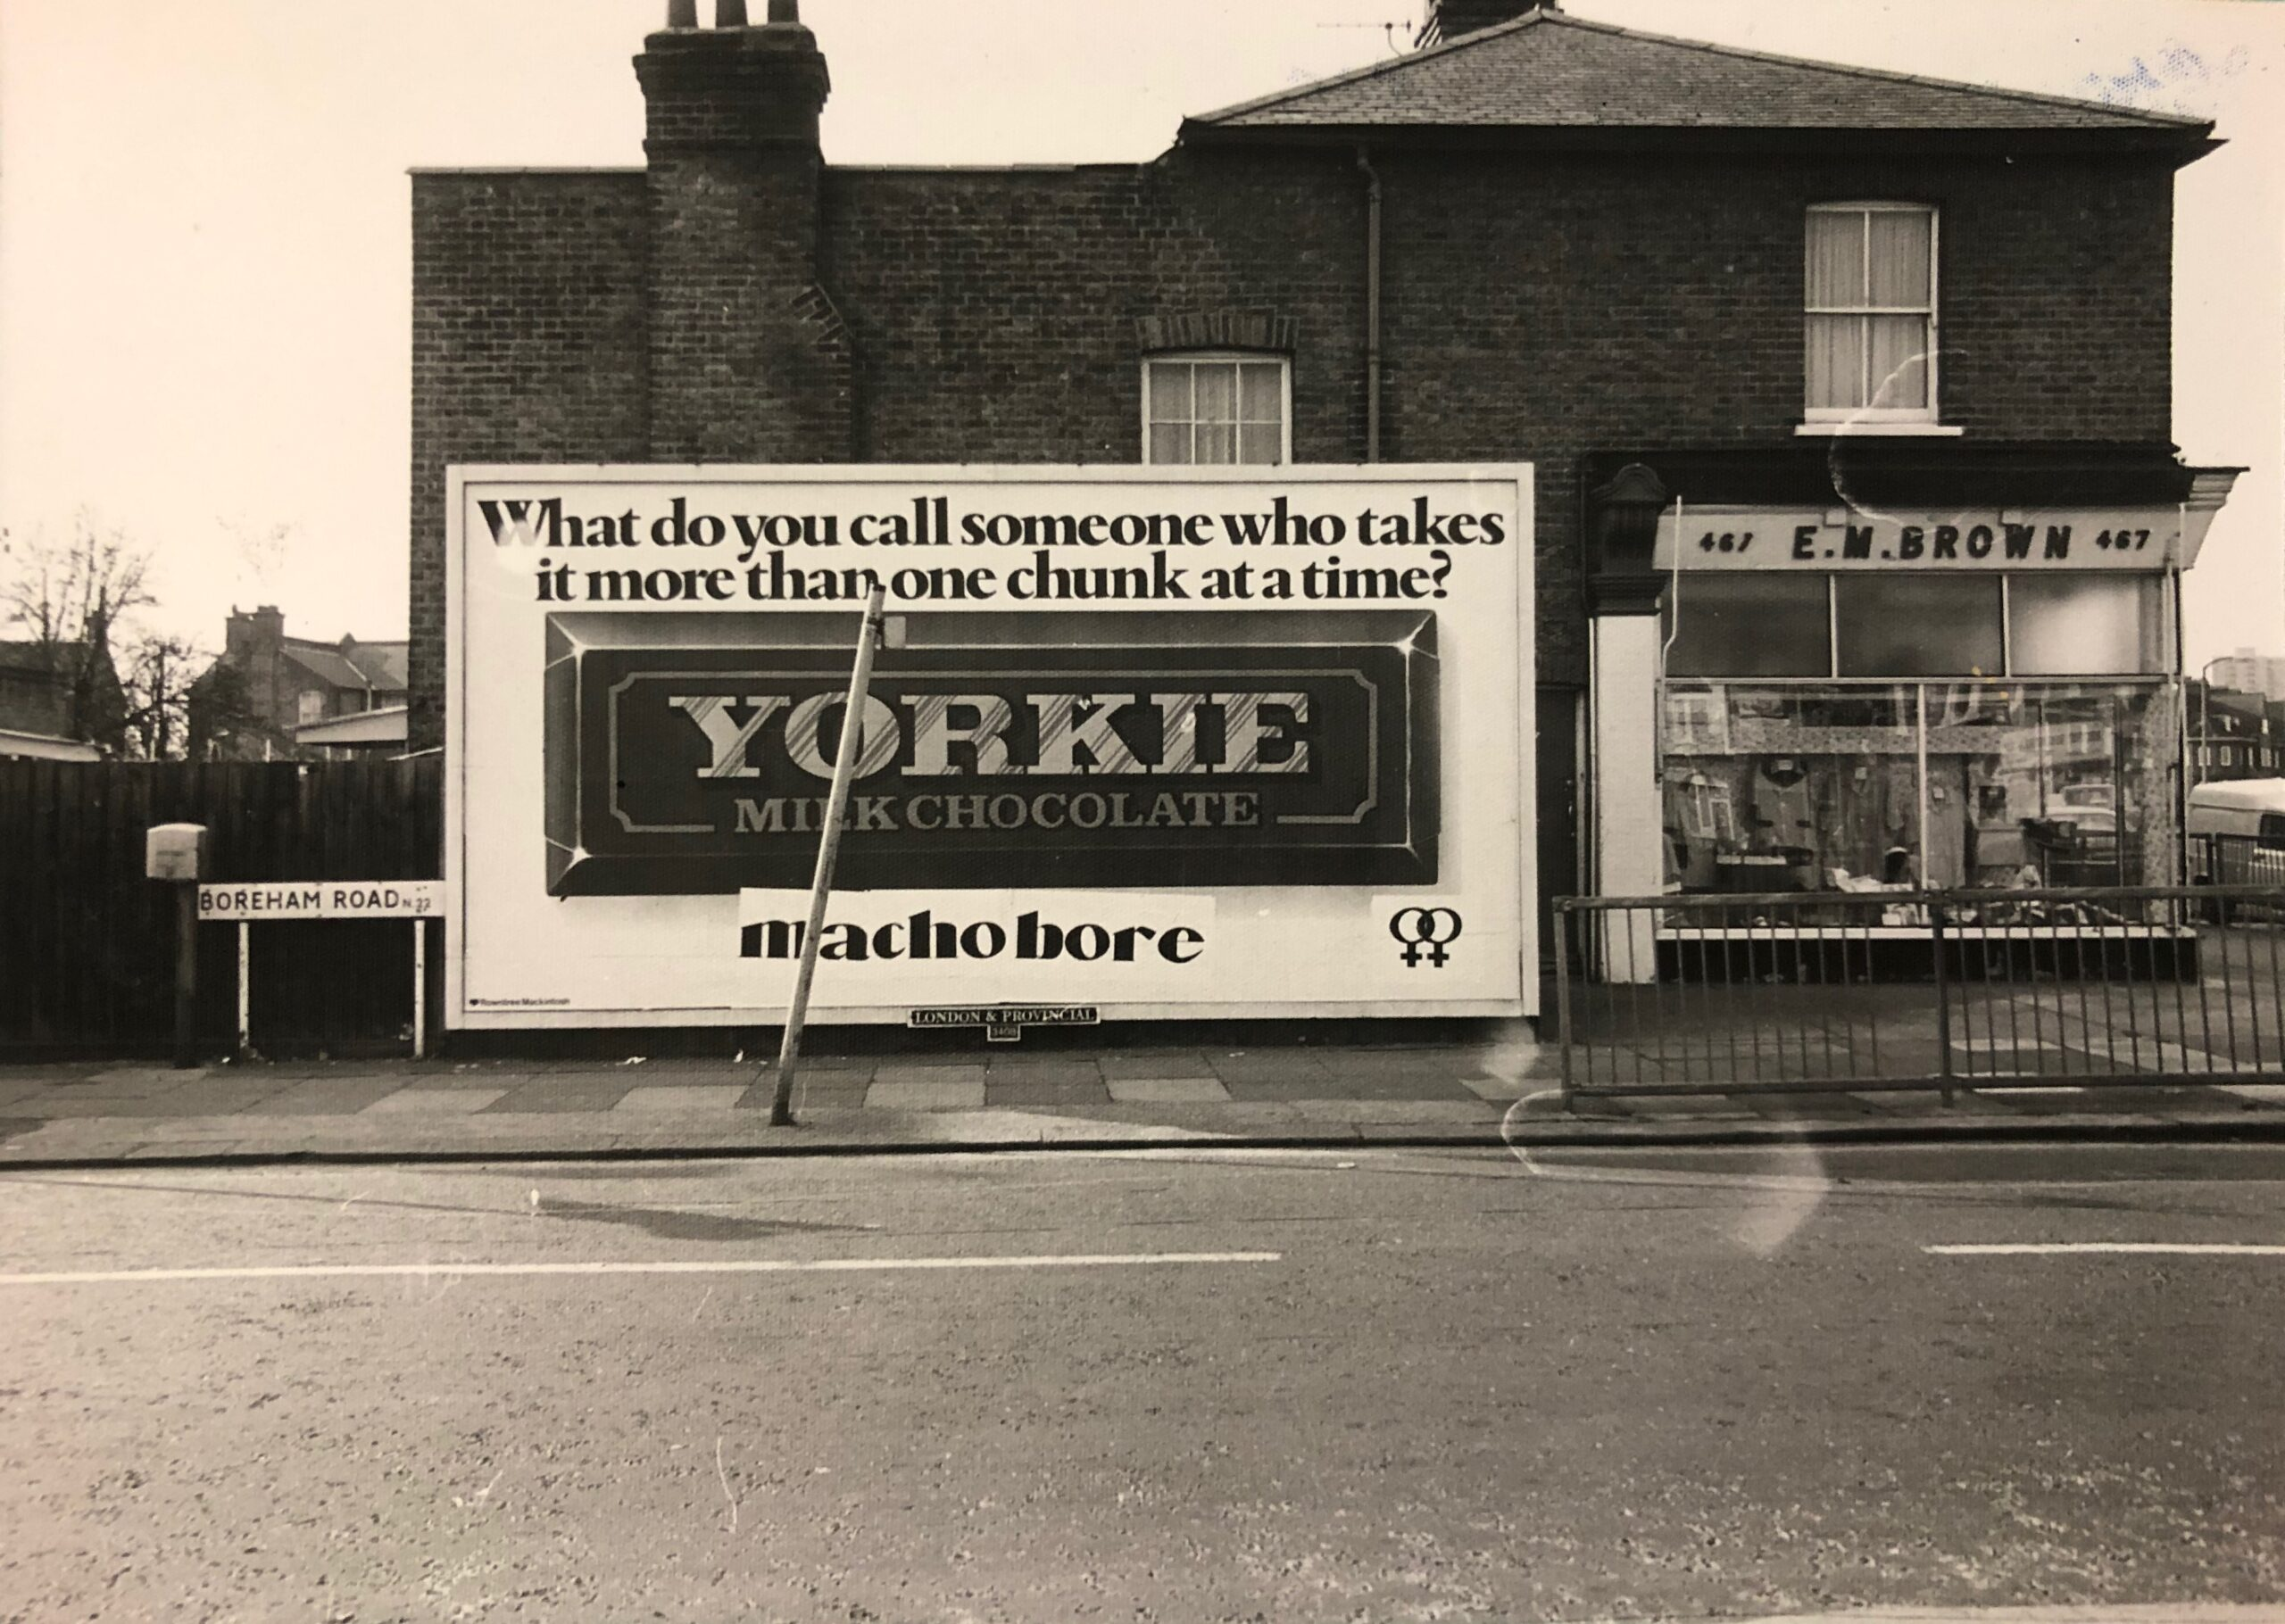 Billboard advert for Yorkie chocolate, featuring a Yorkie bar in the centre and, 'What do you call someone who takes it more than one chunk at a time?' above. Below the bar, someone has wheat-pasted 'macho bore' and the lesbian symbol.